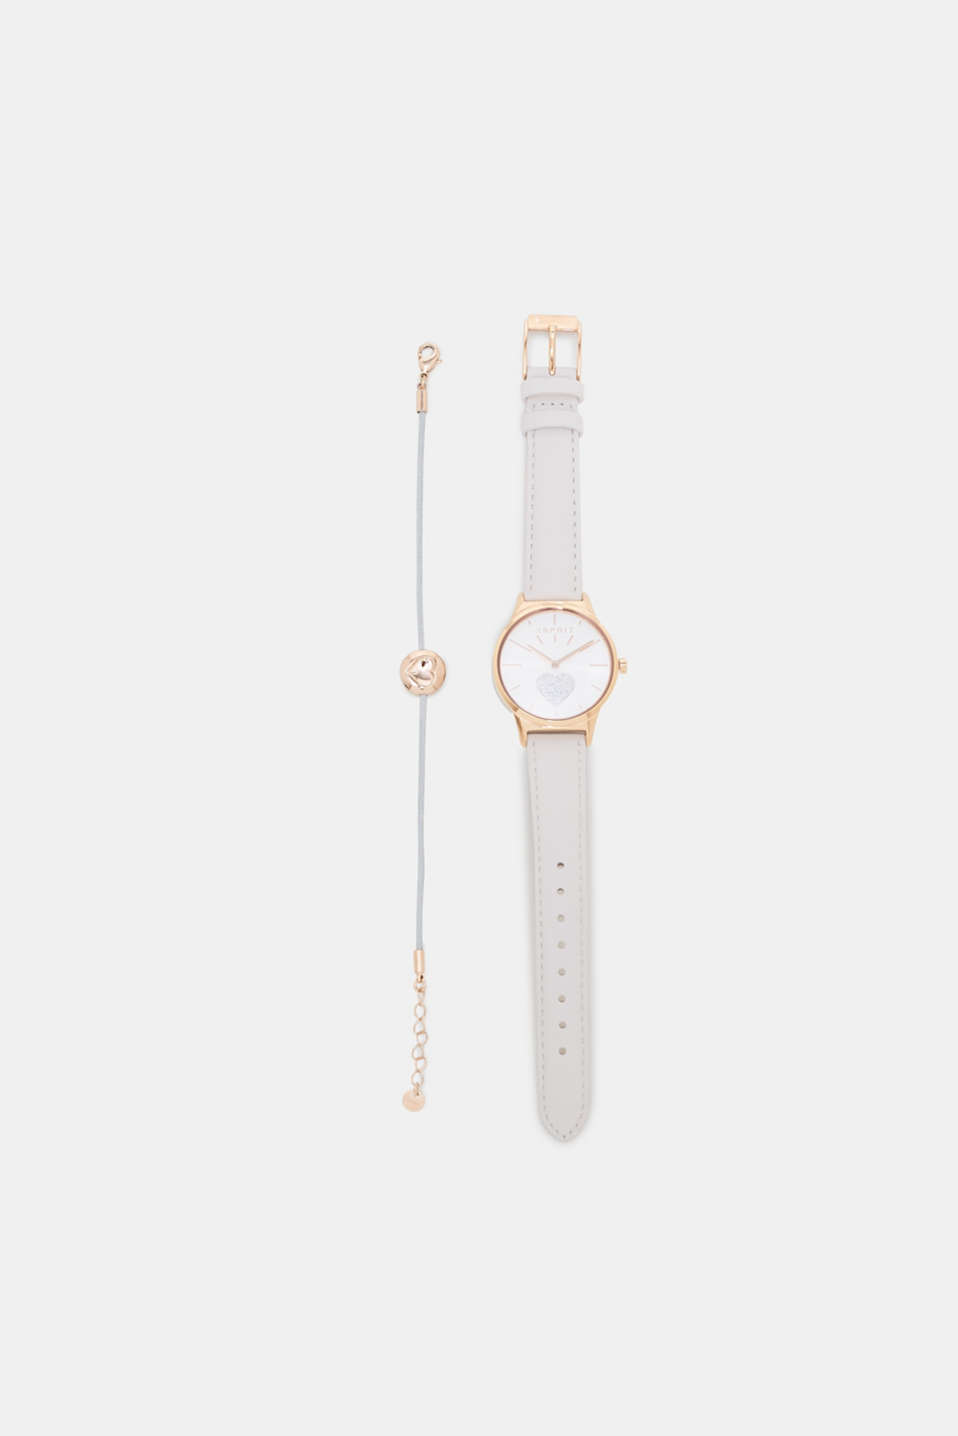 This watch and bracelet set in modern rose gold is modern and lovingly decorated.